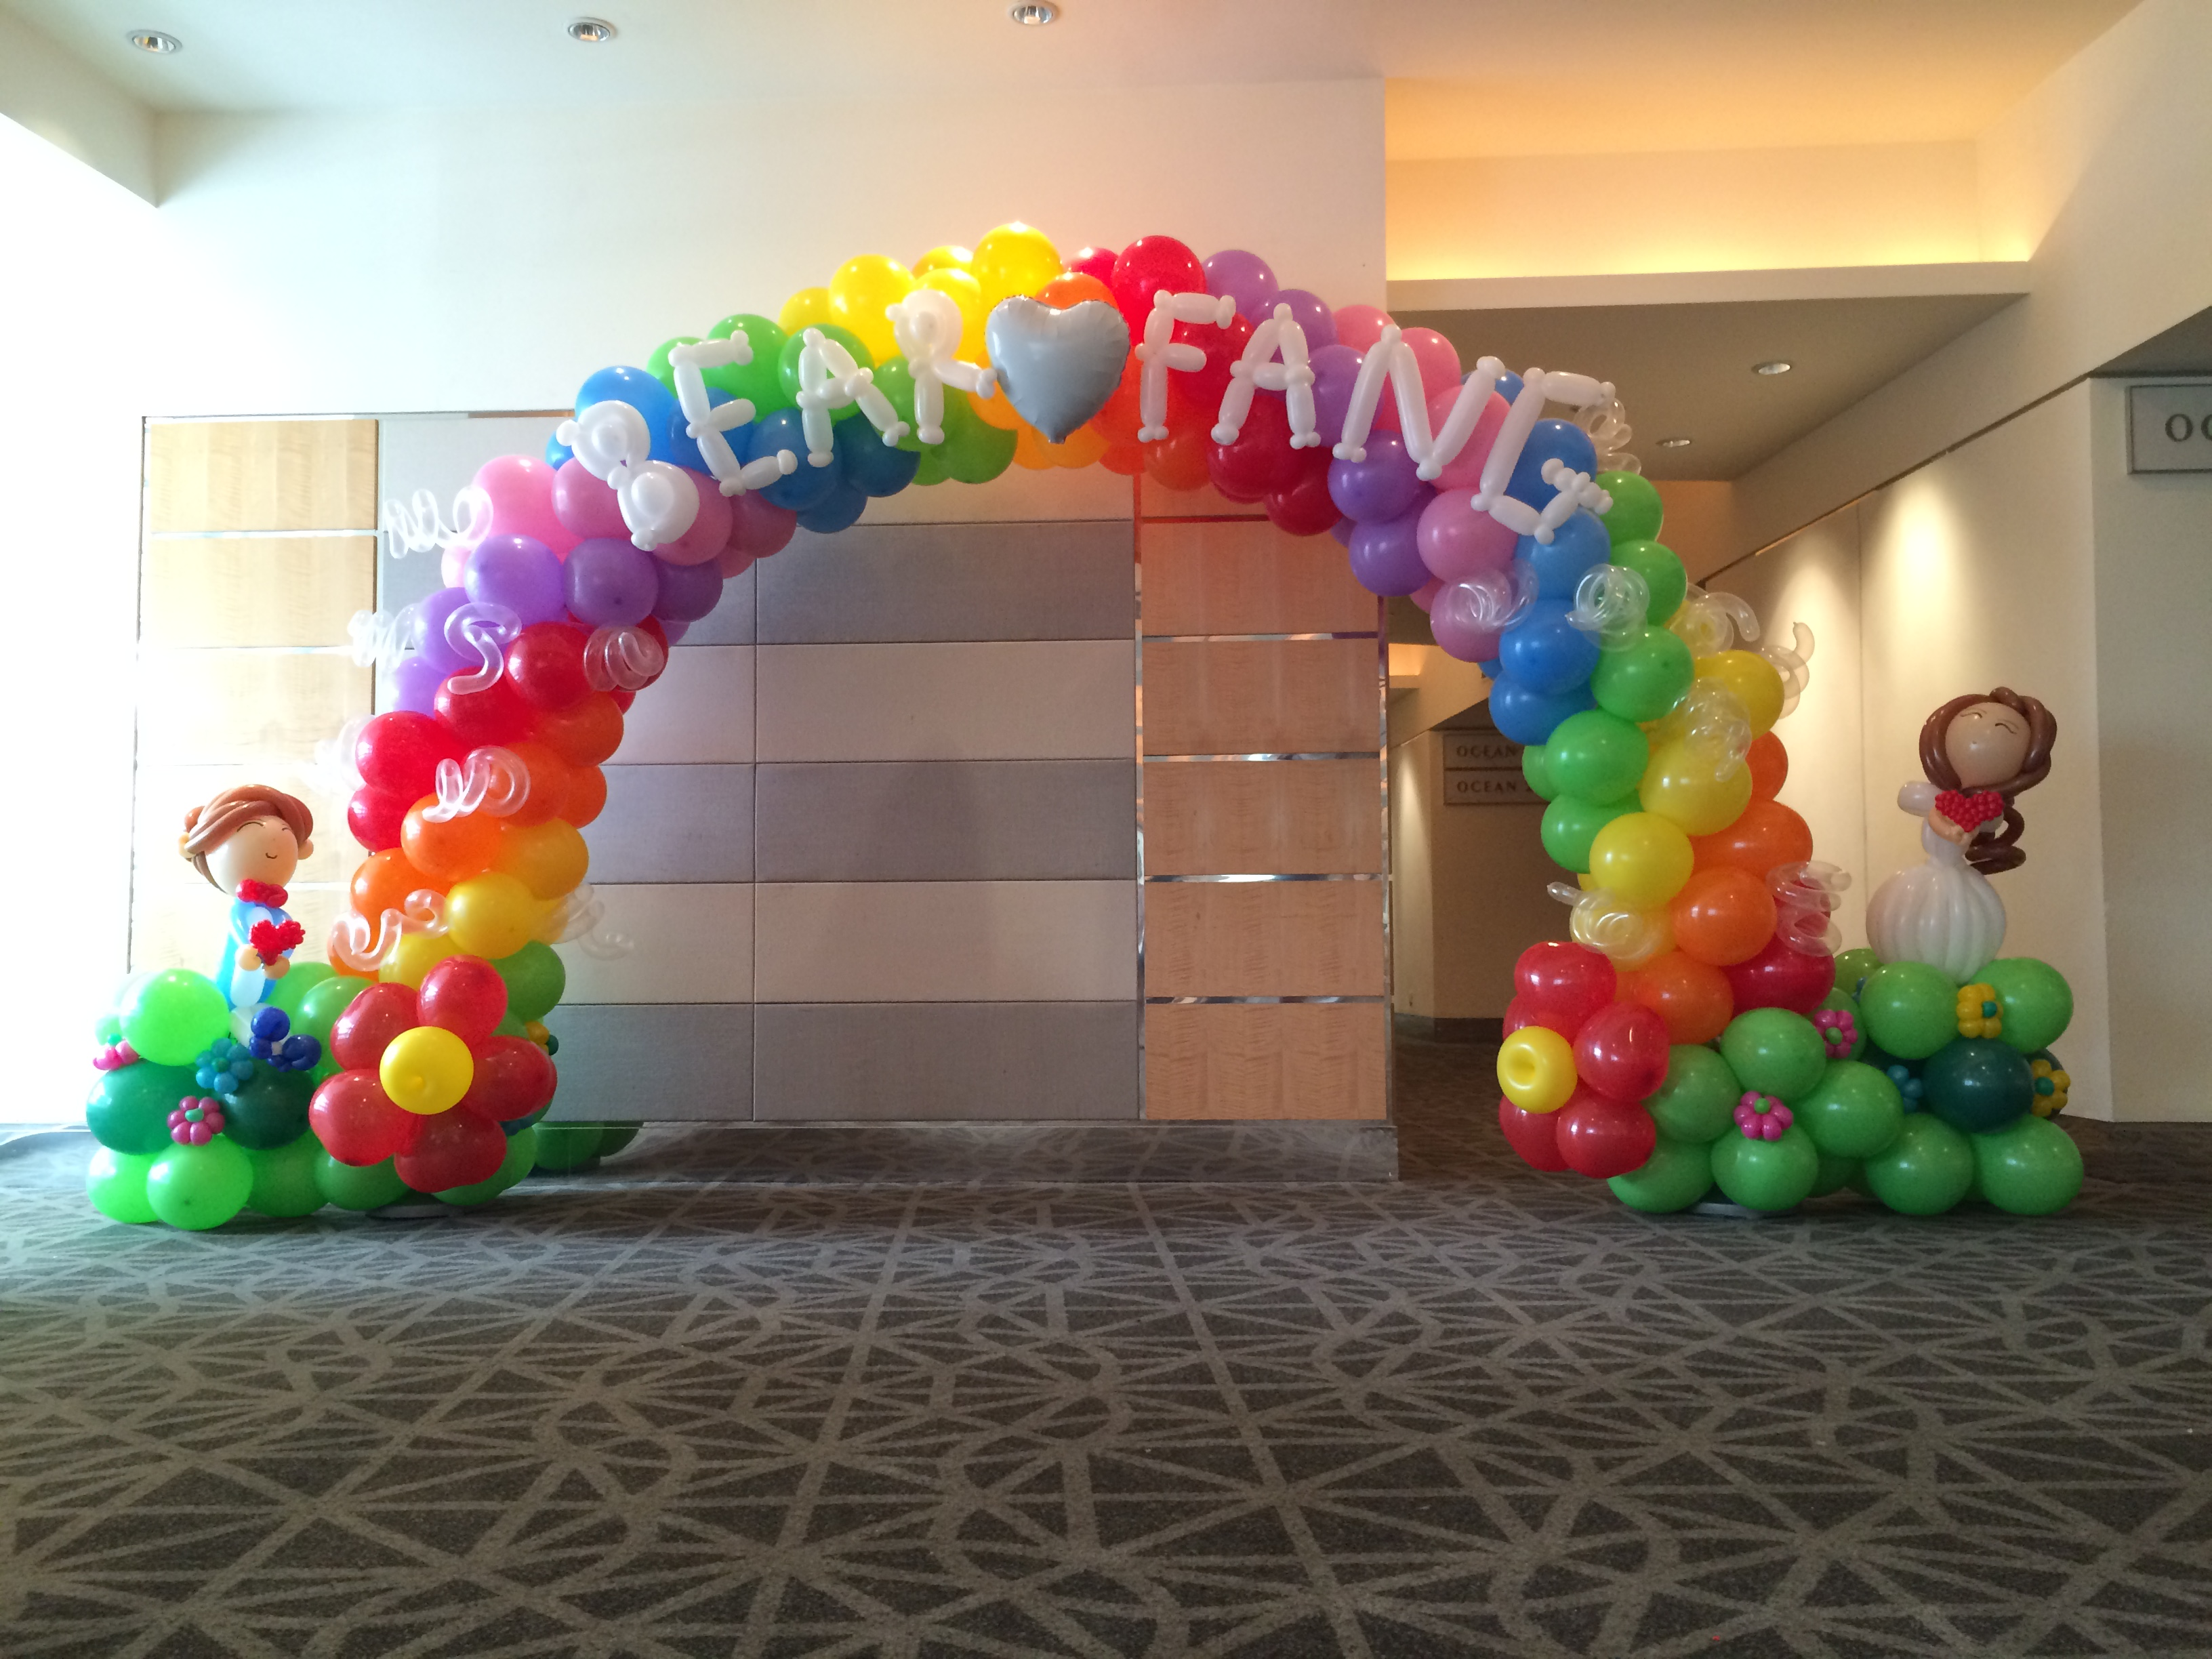 Wedding balloon decorations in singapore that balloons for Balloon arch decoration ideas